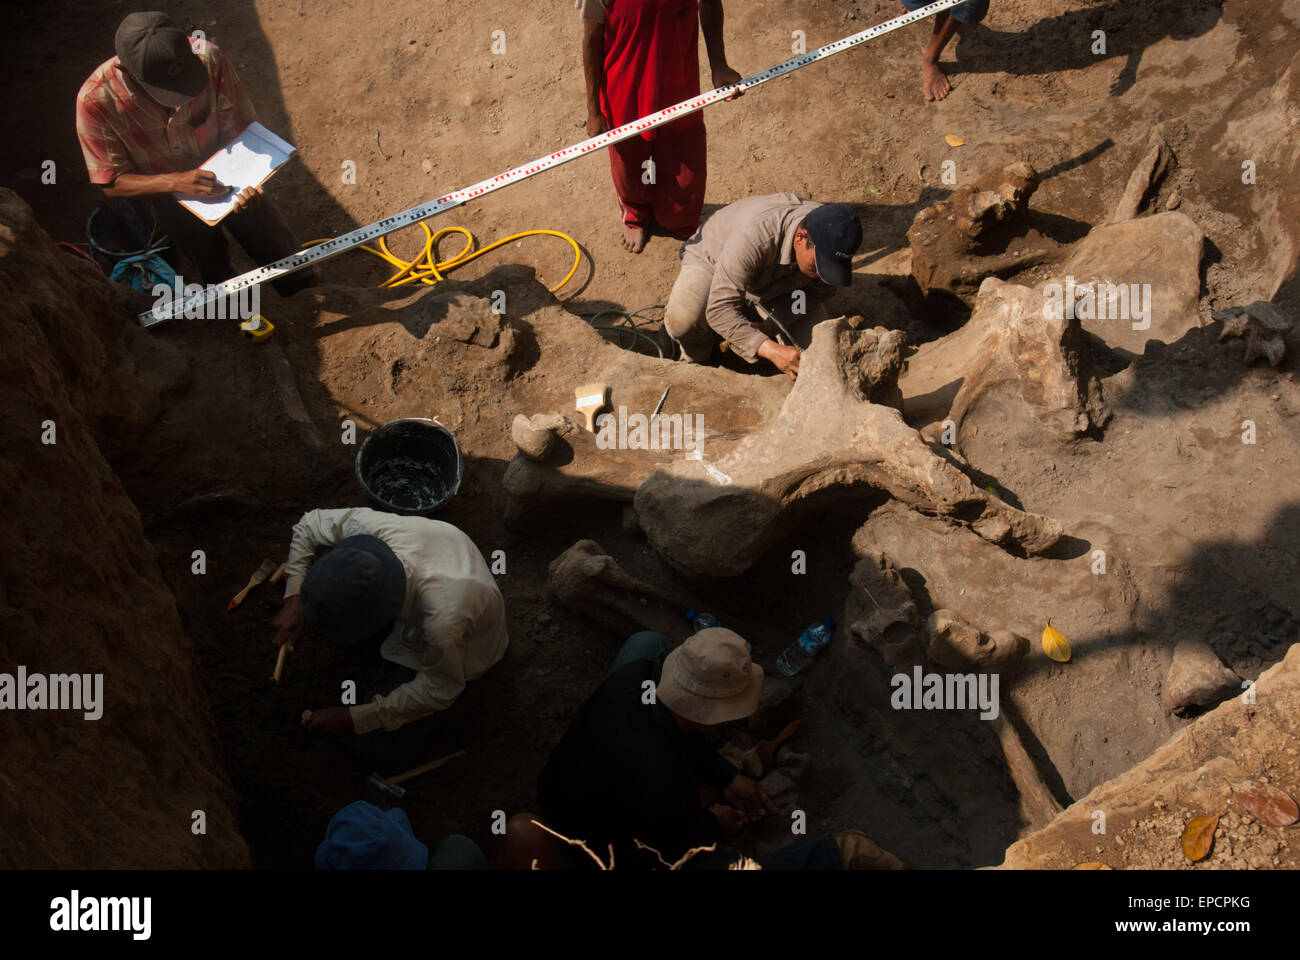 Scientists from Indonesian Vertebrate Geological Paleontology team excavate ancient elephant fossils (Elephas hysudrindicus). - Stock Image